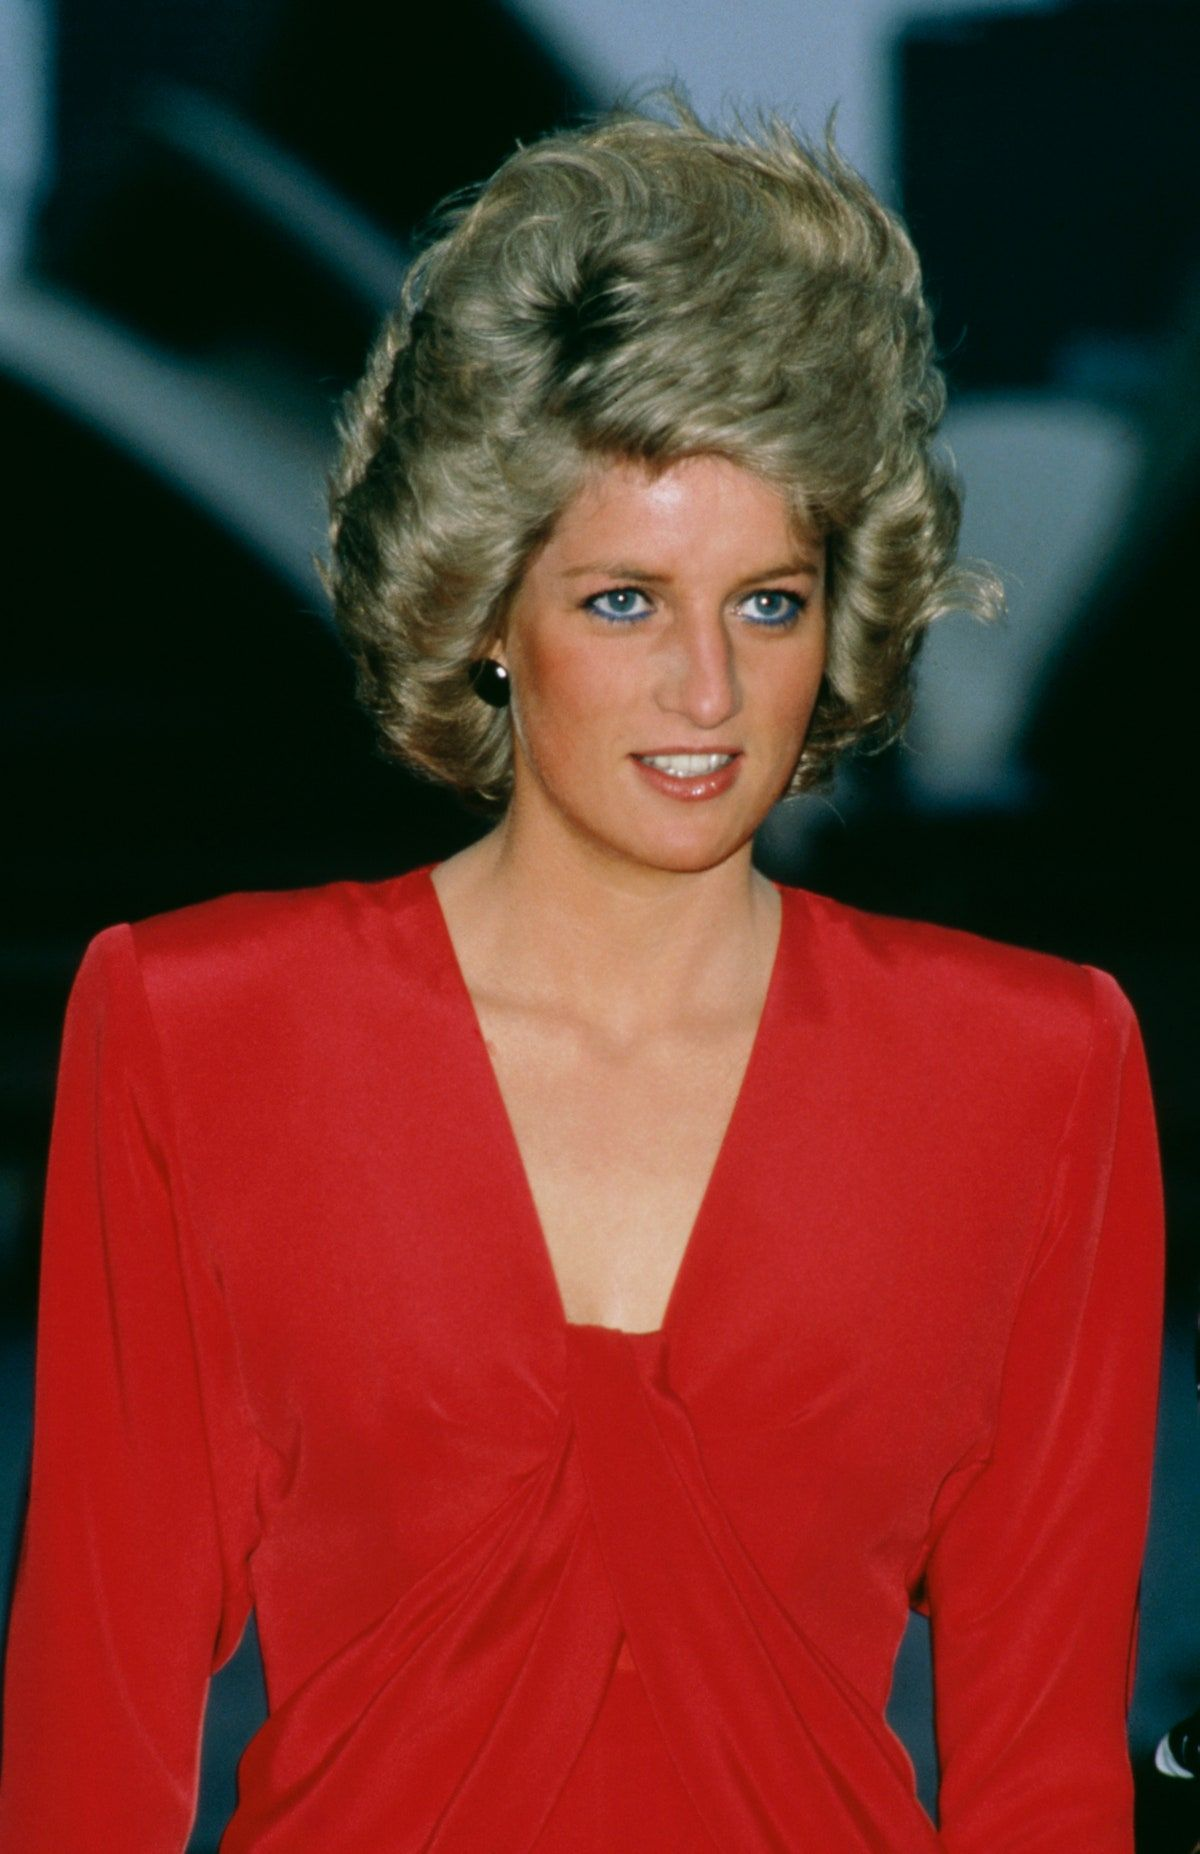 50 Rare, Emotional Photos of Princess Diana in 2020